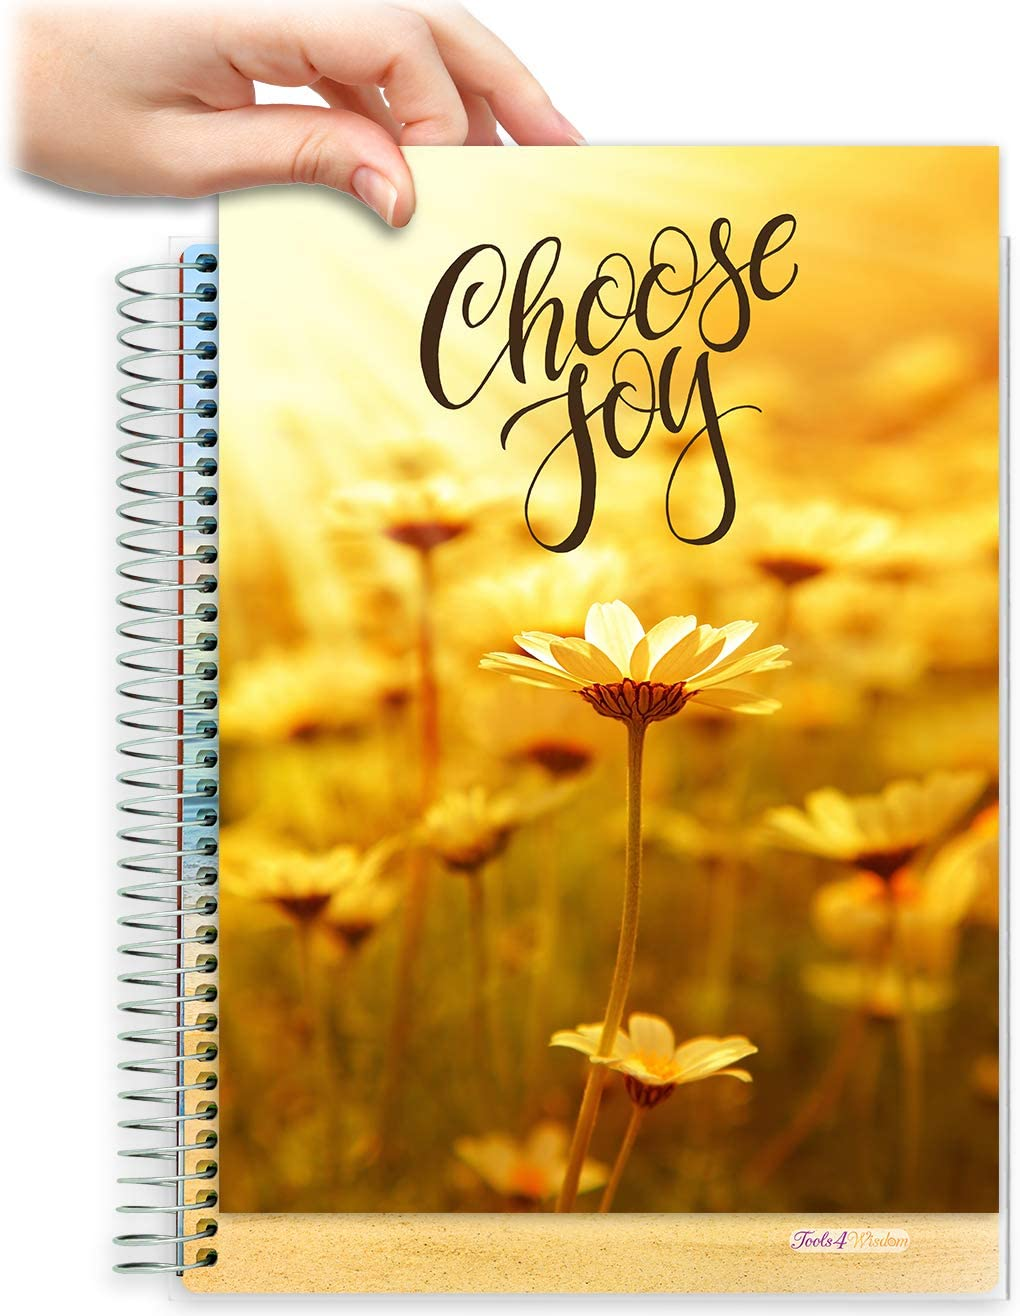 8.5x11 Customizable Softcover Planner • April 2021 to June 2022 Academic Year • Golden Daisies